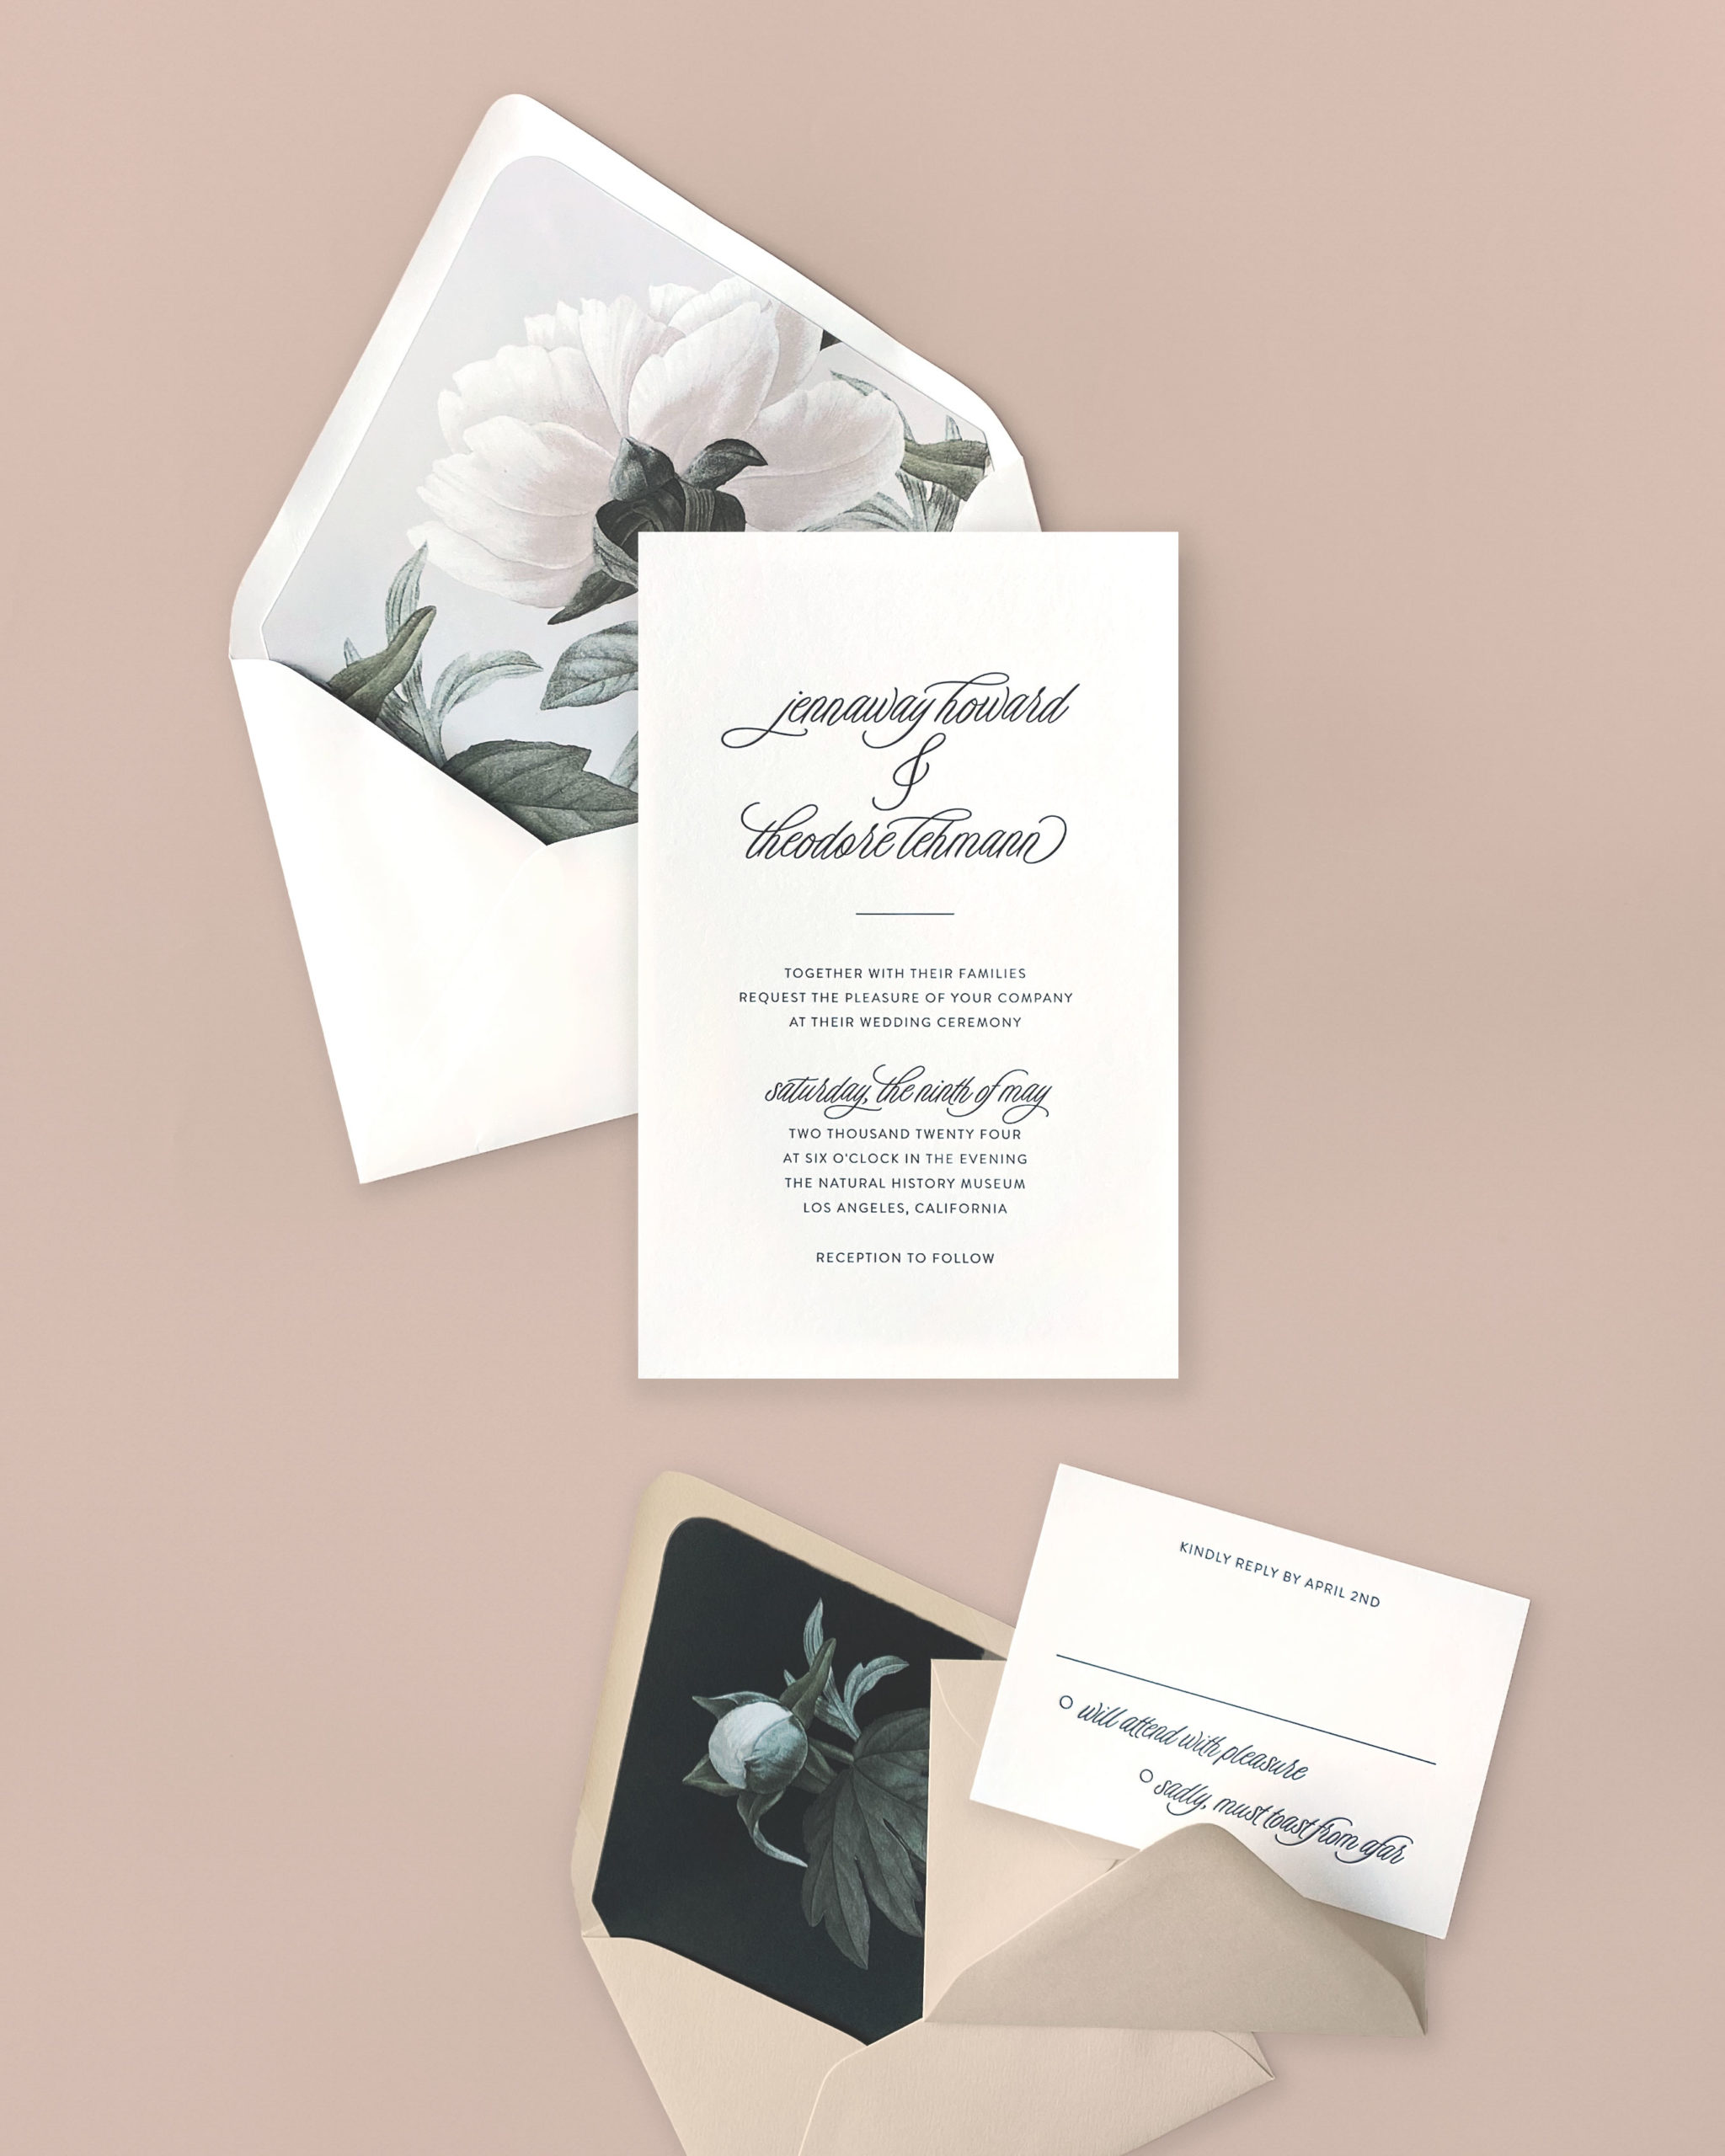 modern letterpress wedding invitation is accented by a floral envelope liner in subtle shades of gray and dusty botanicals.